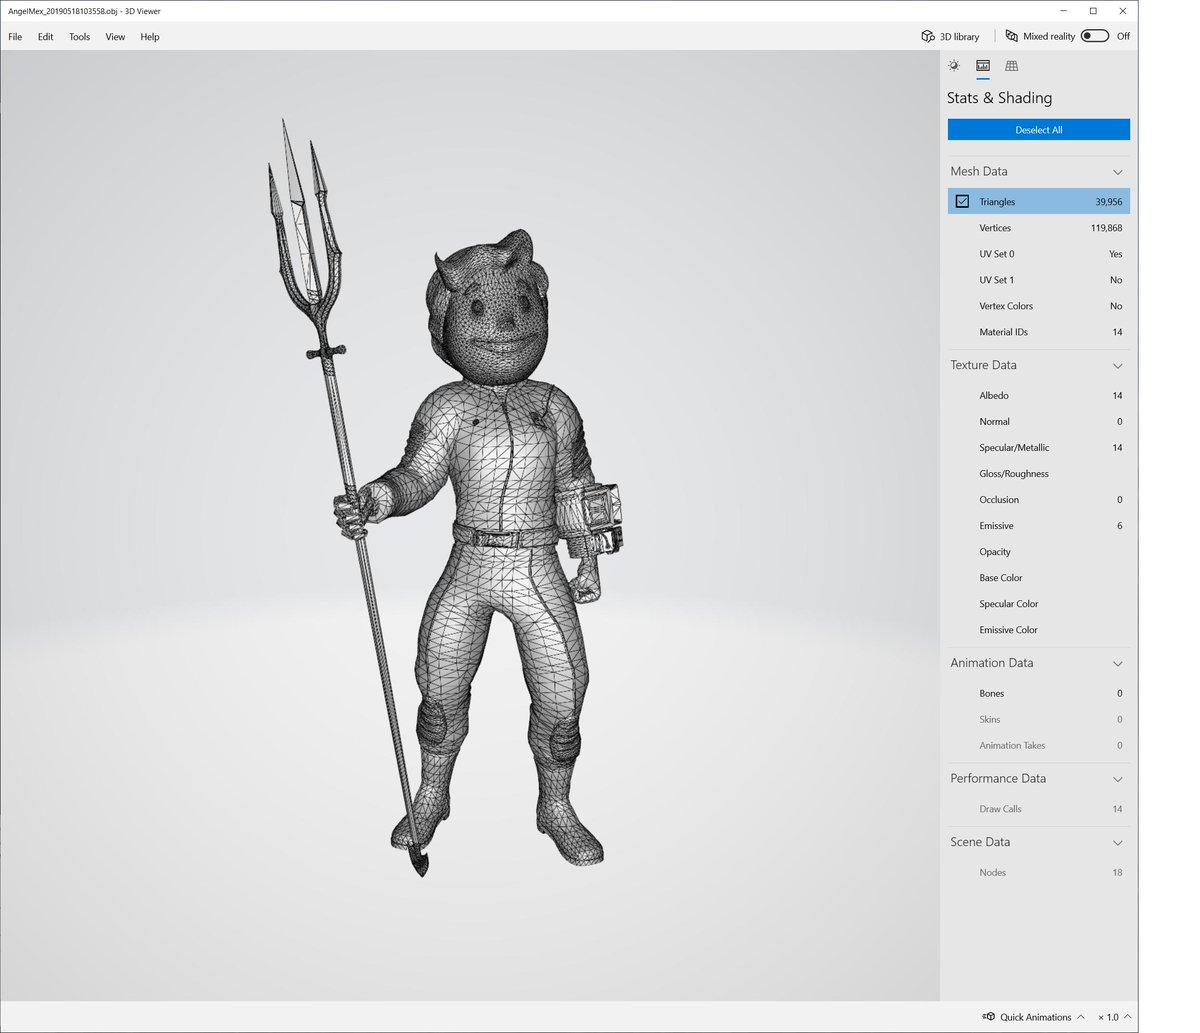 dda75b4f ... your own 3D projects or #3dprinting: #Fallout76 Vault Suit + #PipBoy:  #FREE #DC #Aquaman trident: Free #Fallout Vault Boy mask: $2.99 Links in  comments.